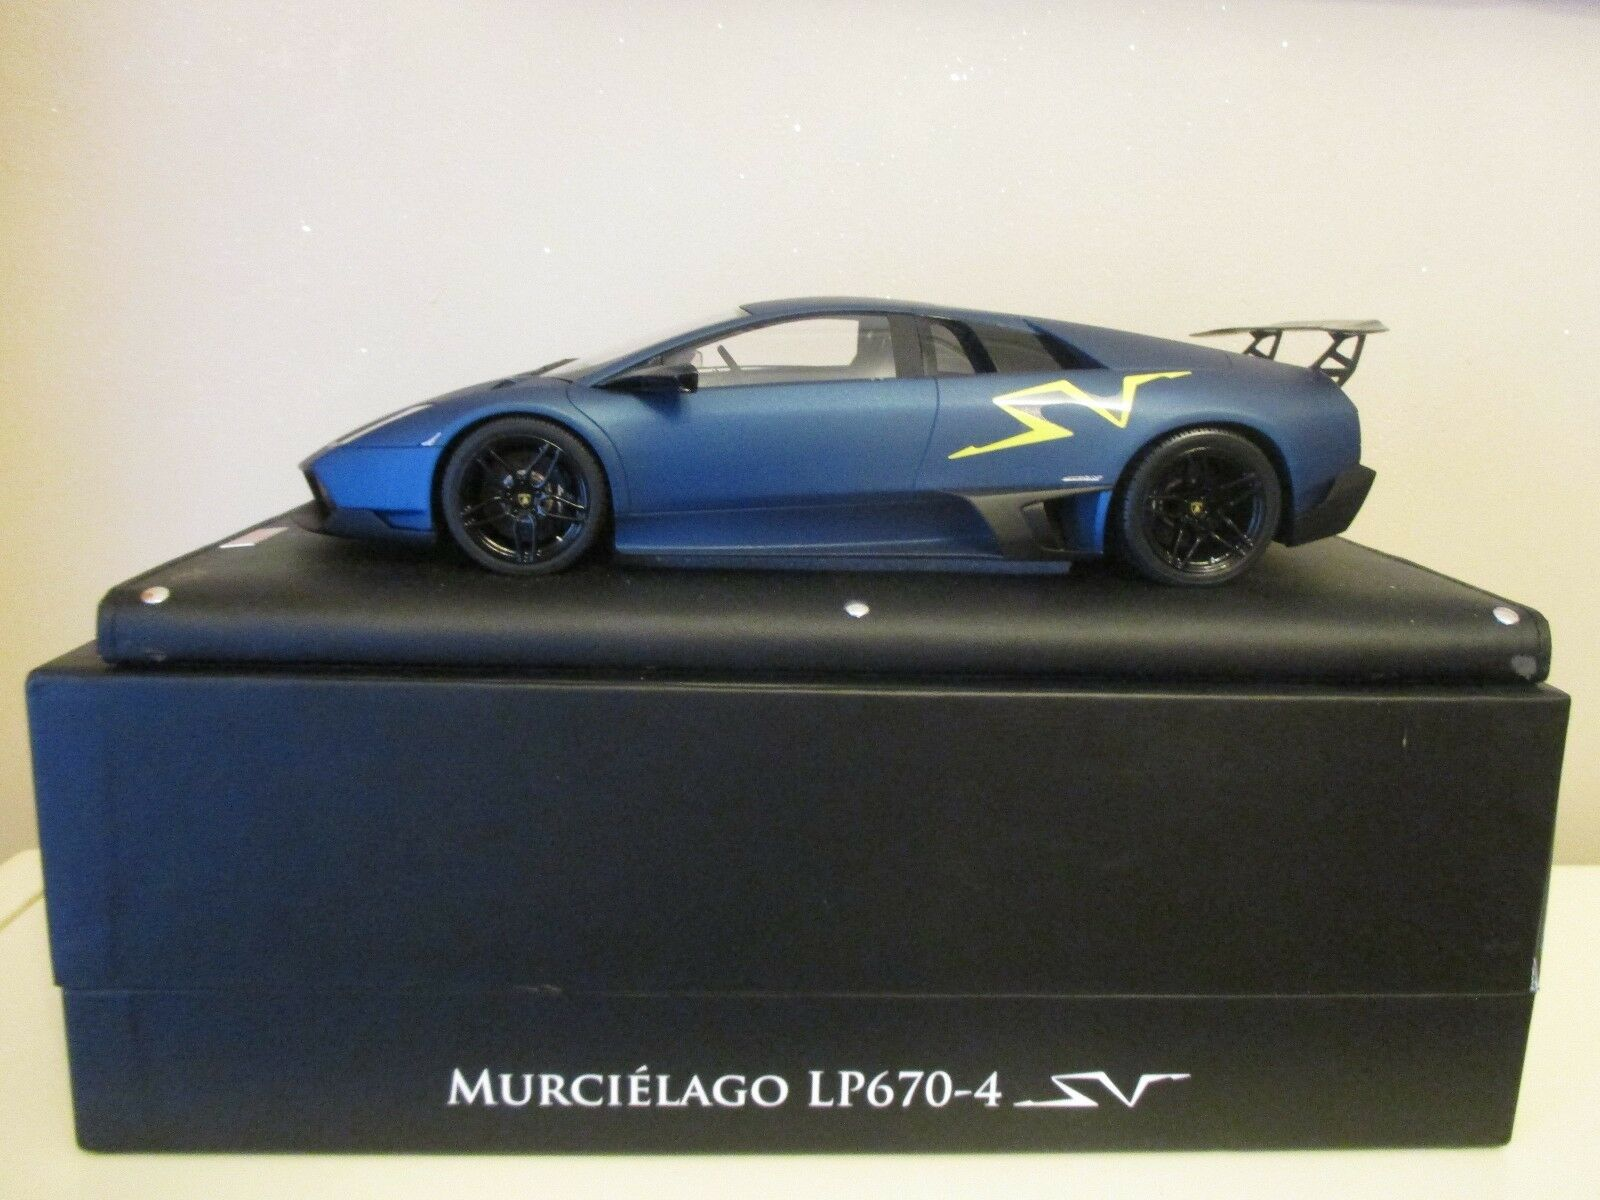 LAMBORGHINI LP670-4 SV MR 1 18 MAT bleu N° 10 BIG jaune SV LOGO NEW CONDITION